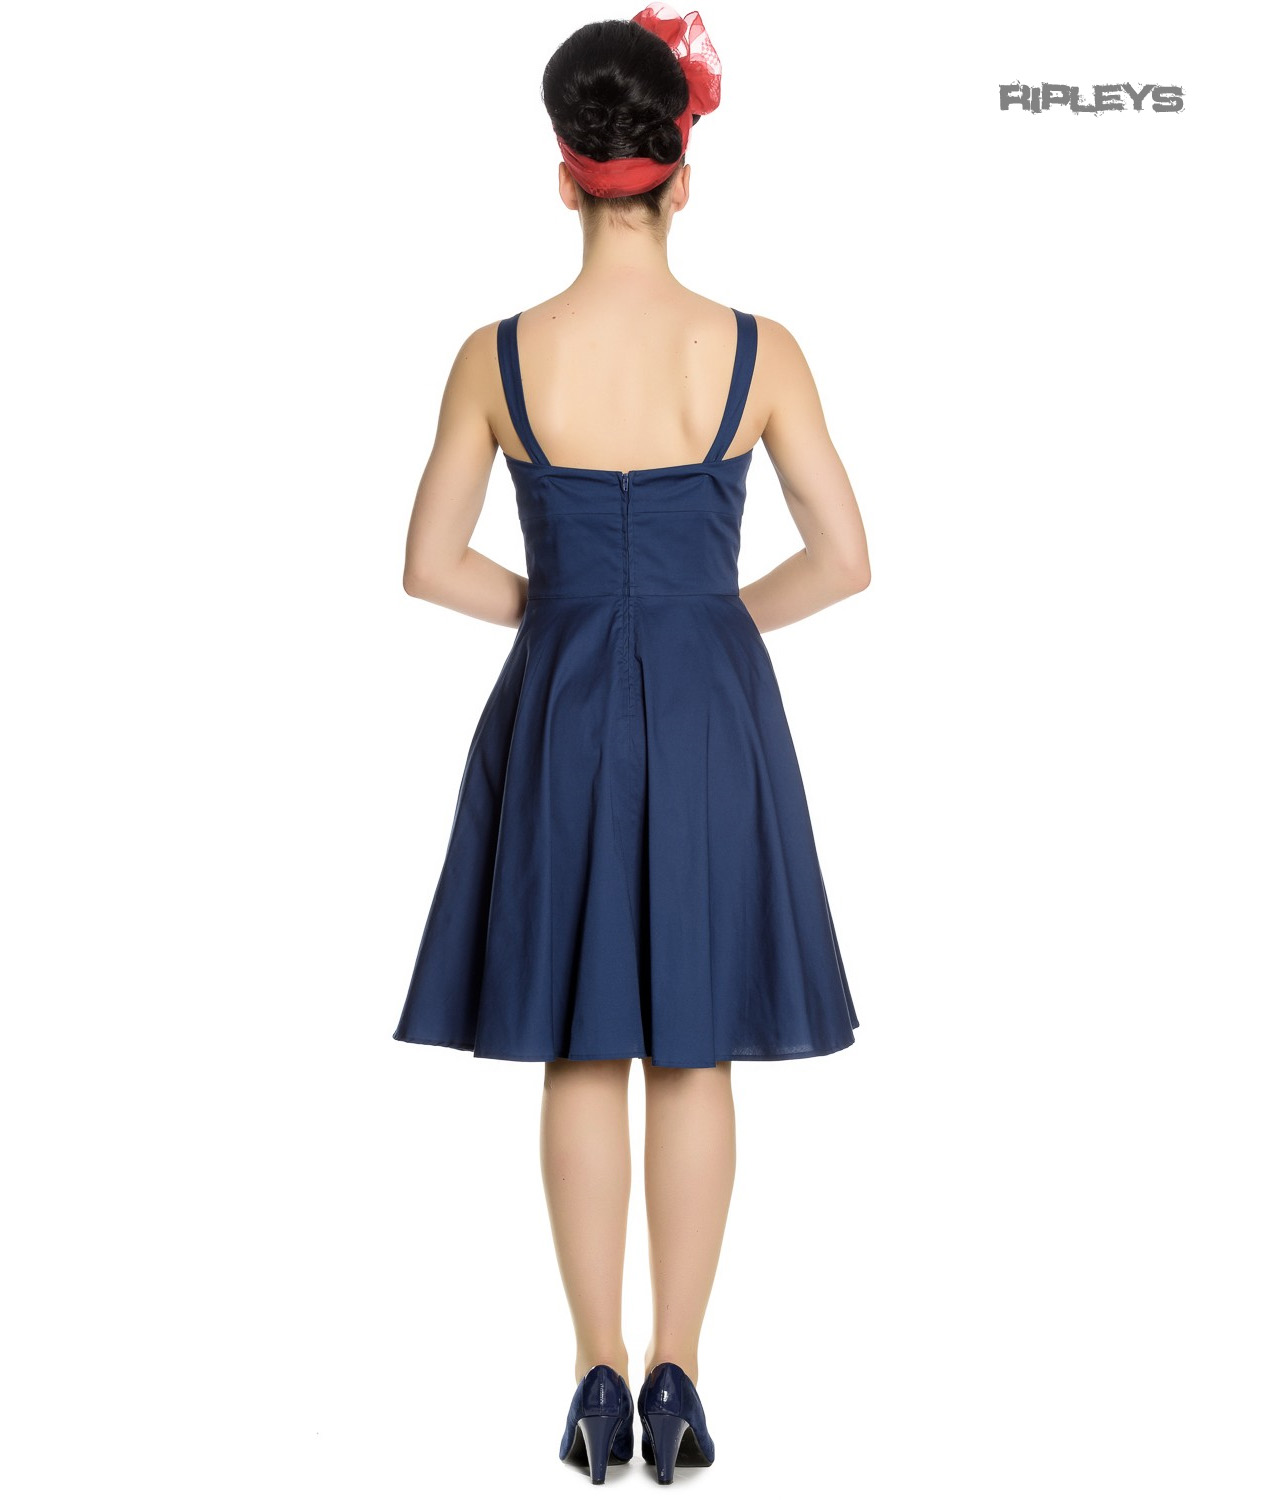 Hell-Bunny-Vintage-50s-Pin-Up-Dress-Navy-Blue-SELA-Nautical-Anchors-All-Sizes thumbnail 24